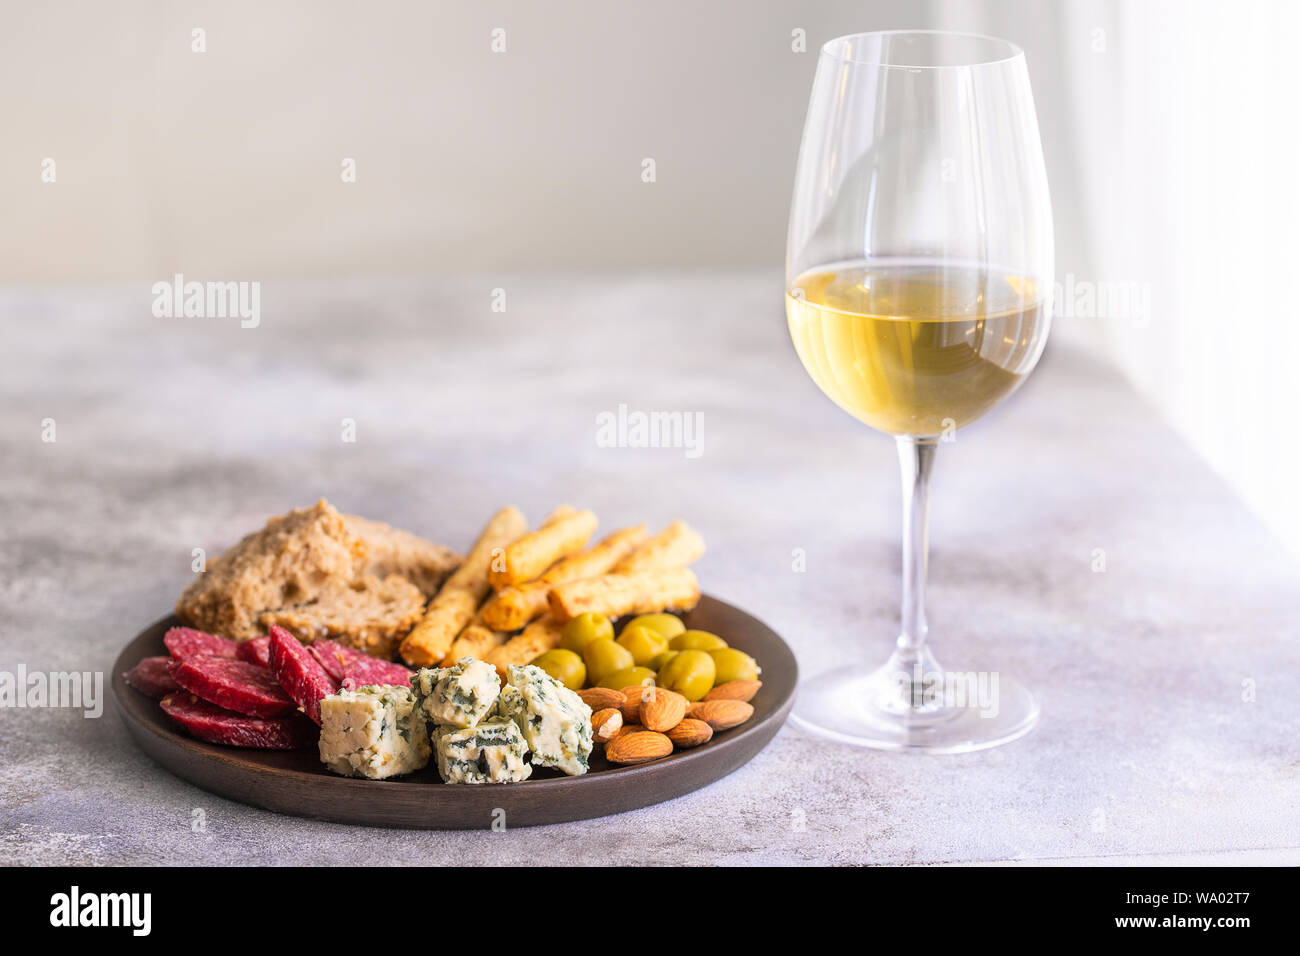 Glass Of White Wine And Plate With Different Snacks Blue Cheese Olives Baguette Slices Cured Meat Grapes And Nuts Wine Snacks Set Background Stock Photo Alamy